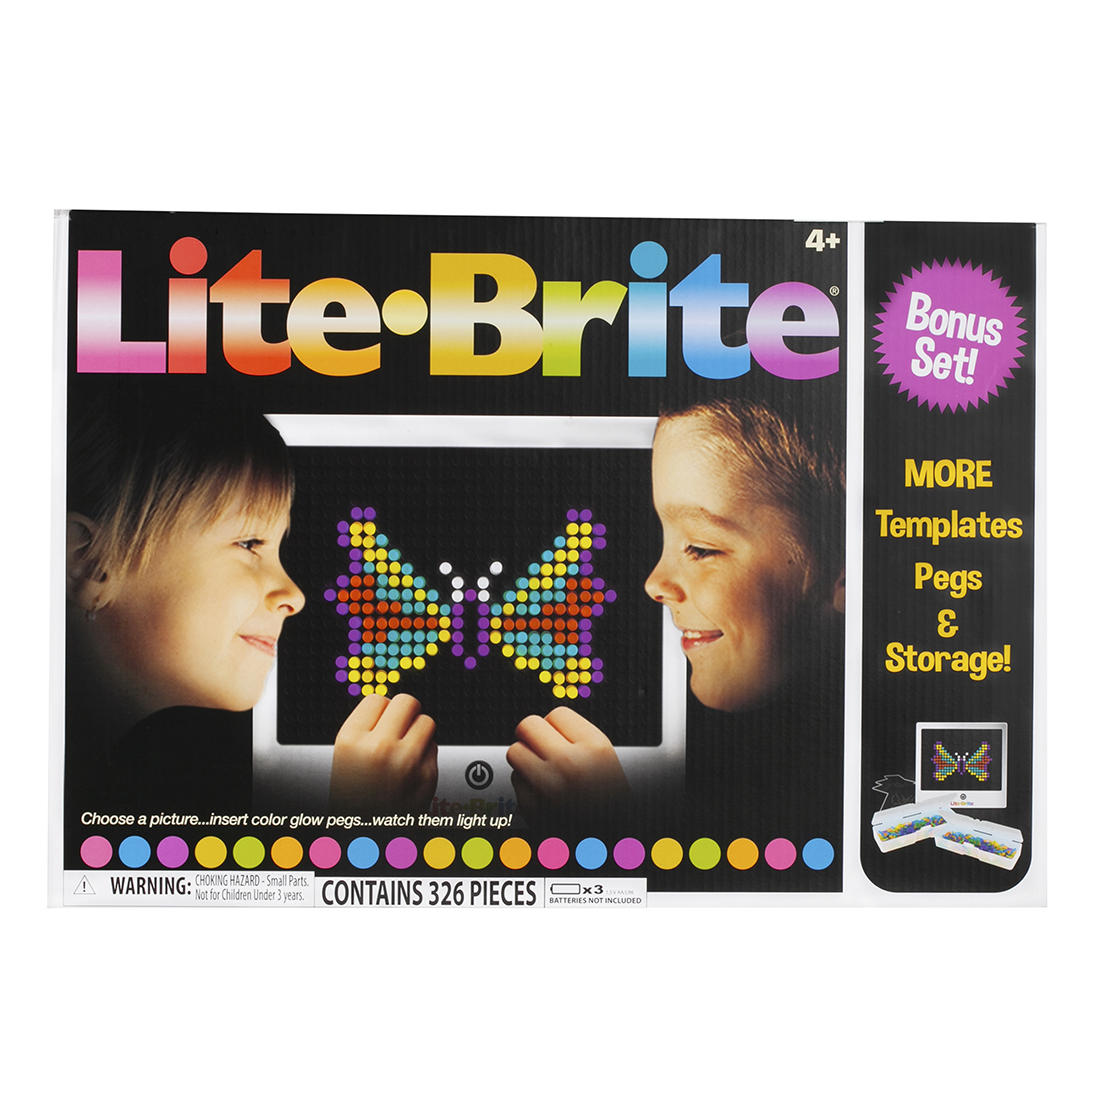 image relating to Printable Lite Brite Templates called Lite Brite Double Reward Preset